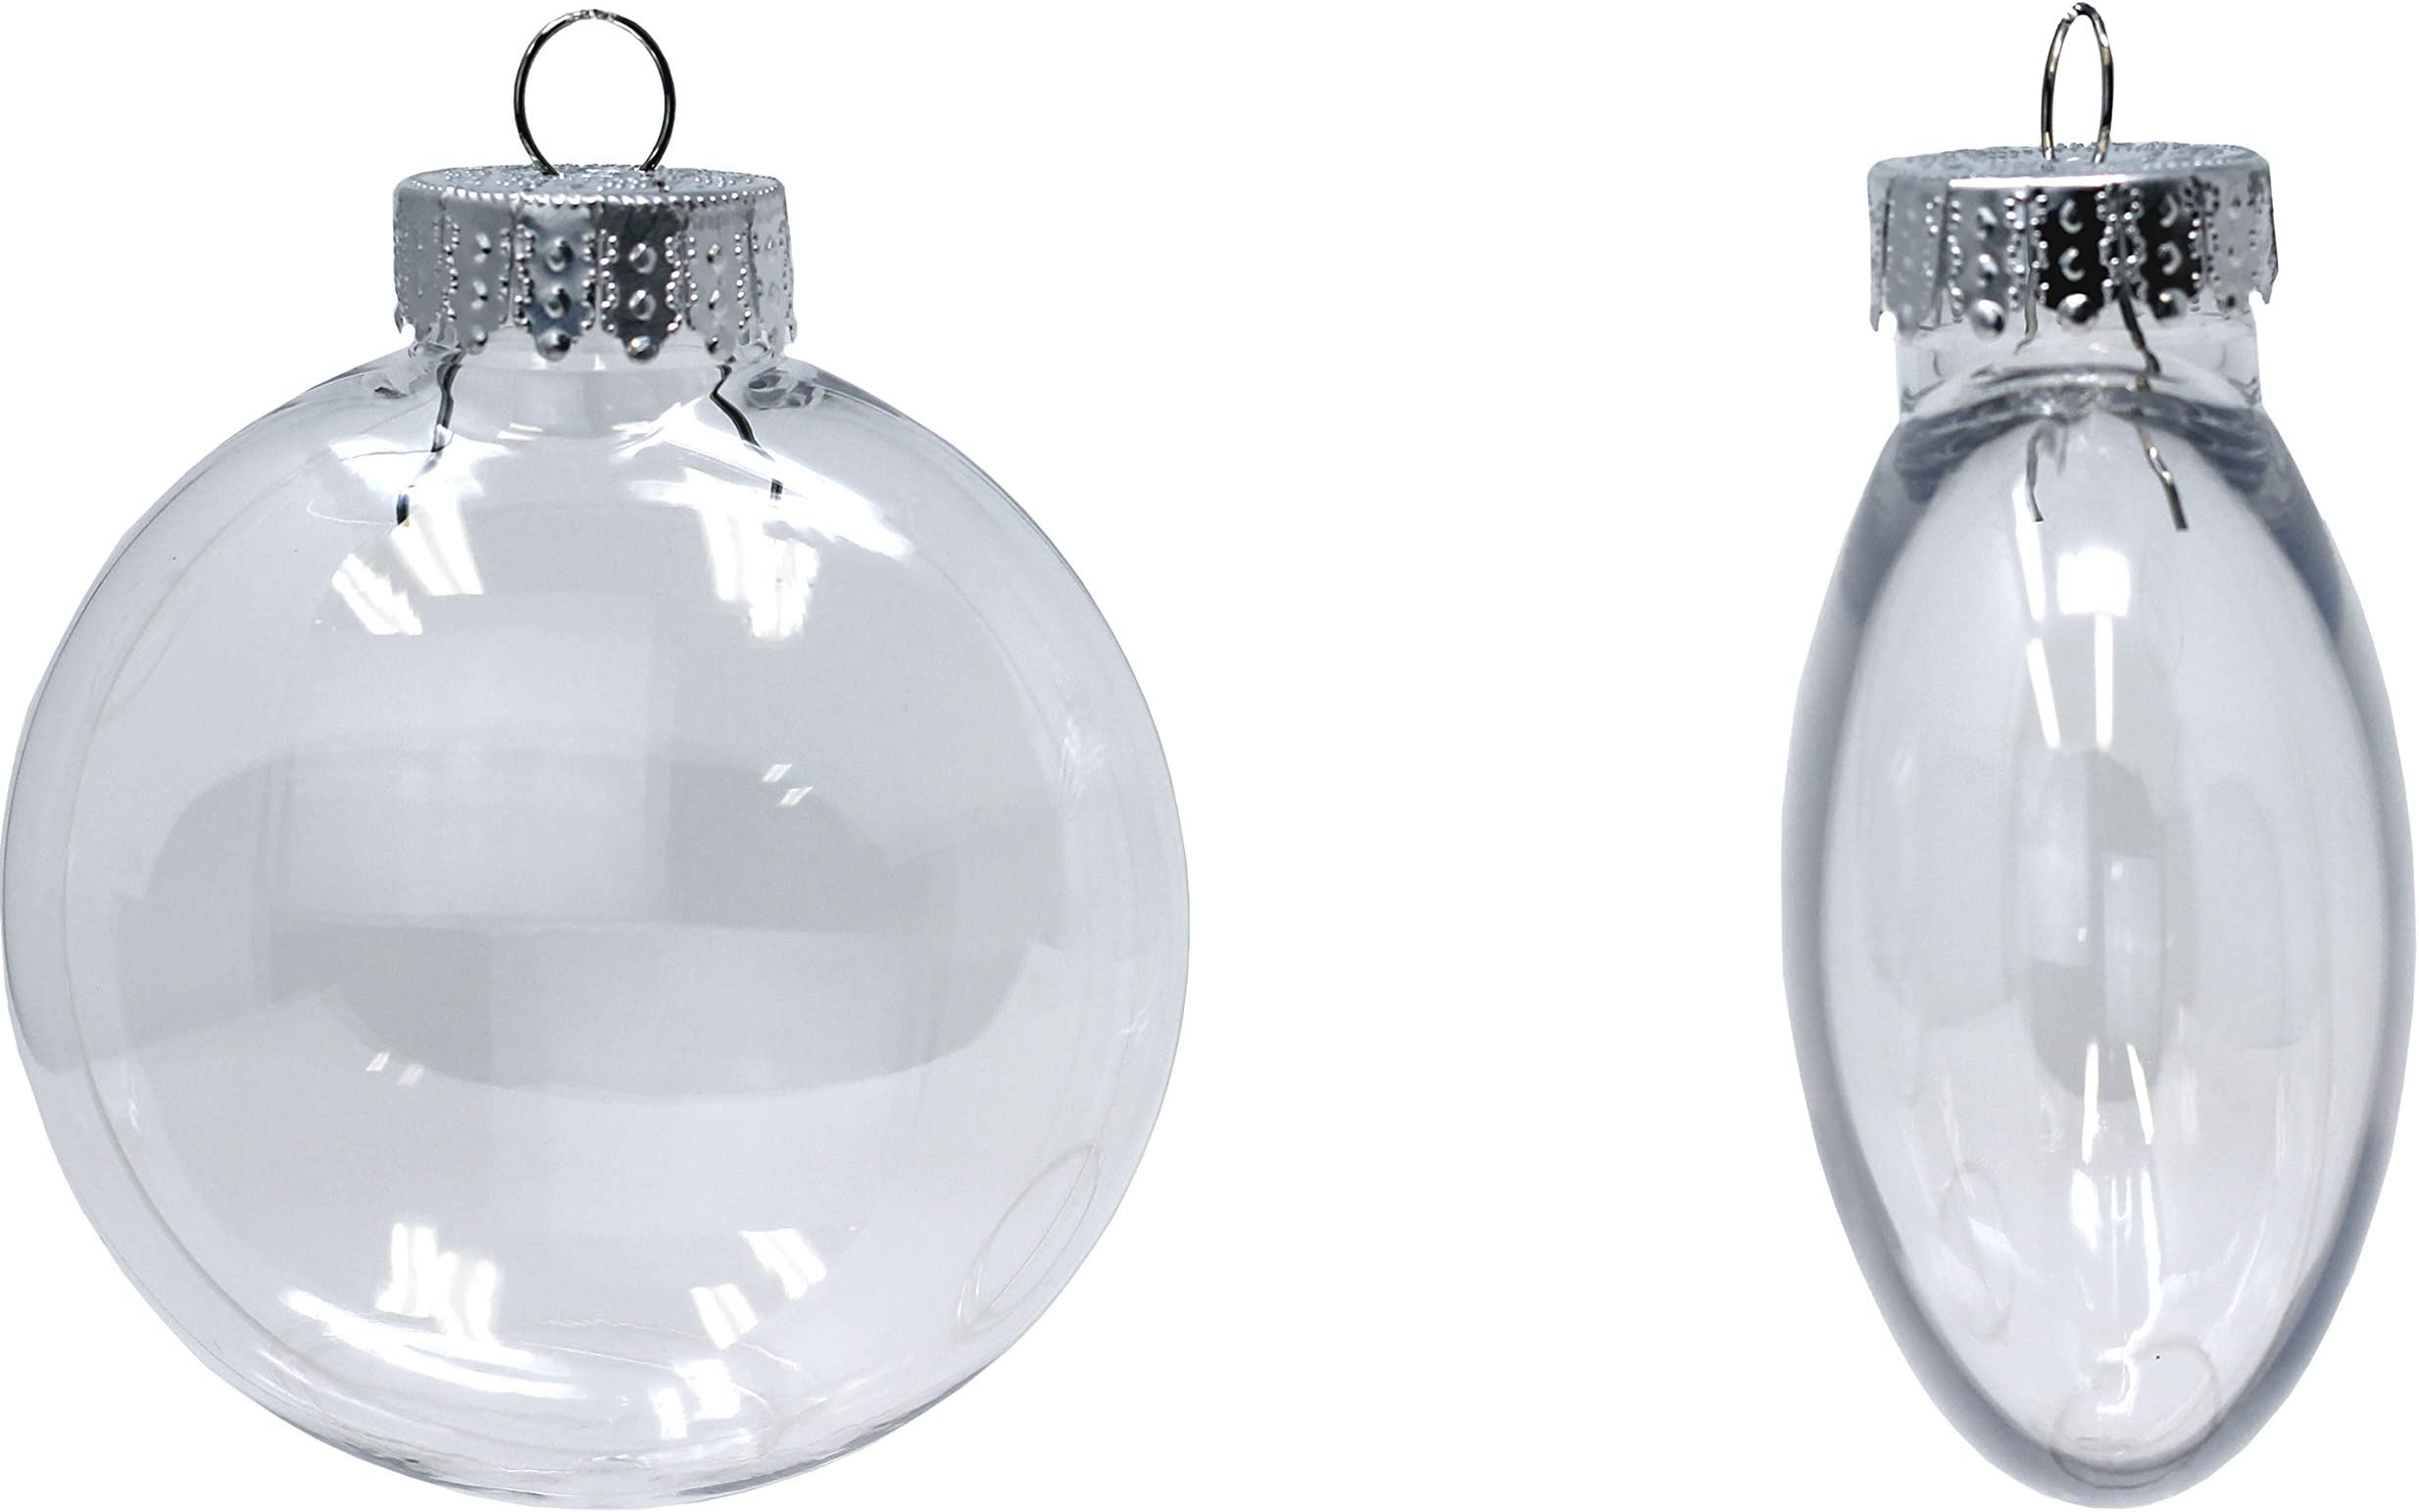 FREE Shipping Pack of 100-100mm Clear Plastic Disc shaped Ornaments